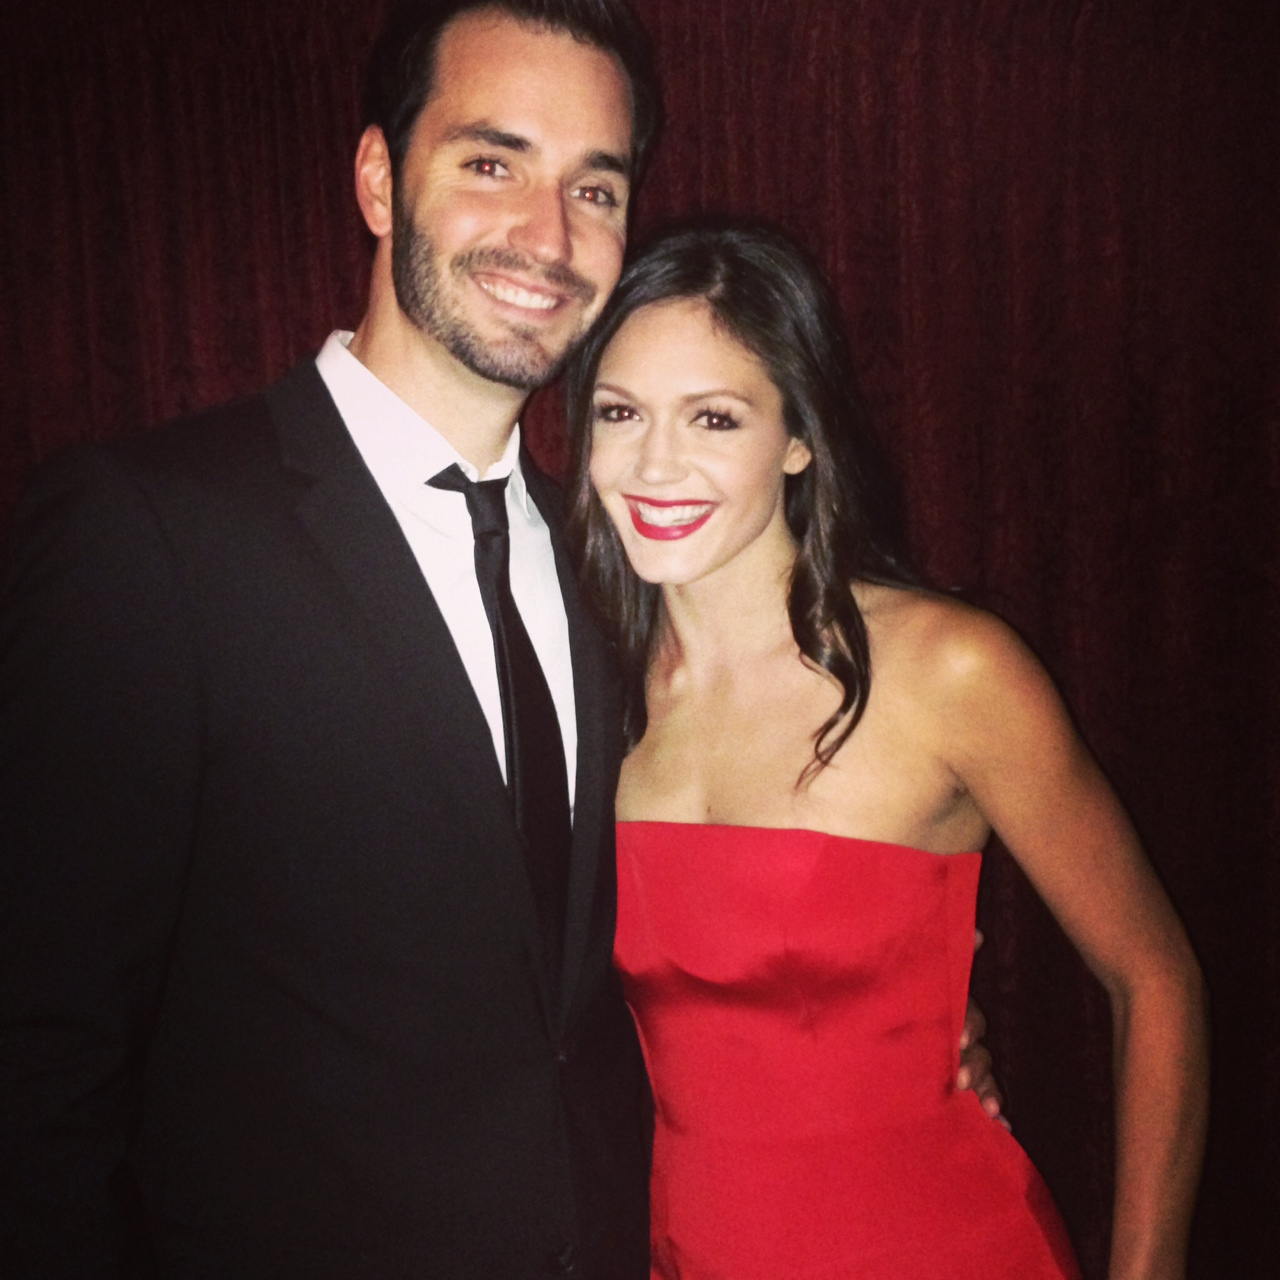 Image 3 of Desiree Hartsock + Chris Seigfried Share Their TV Proposal